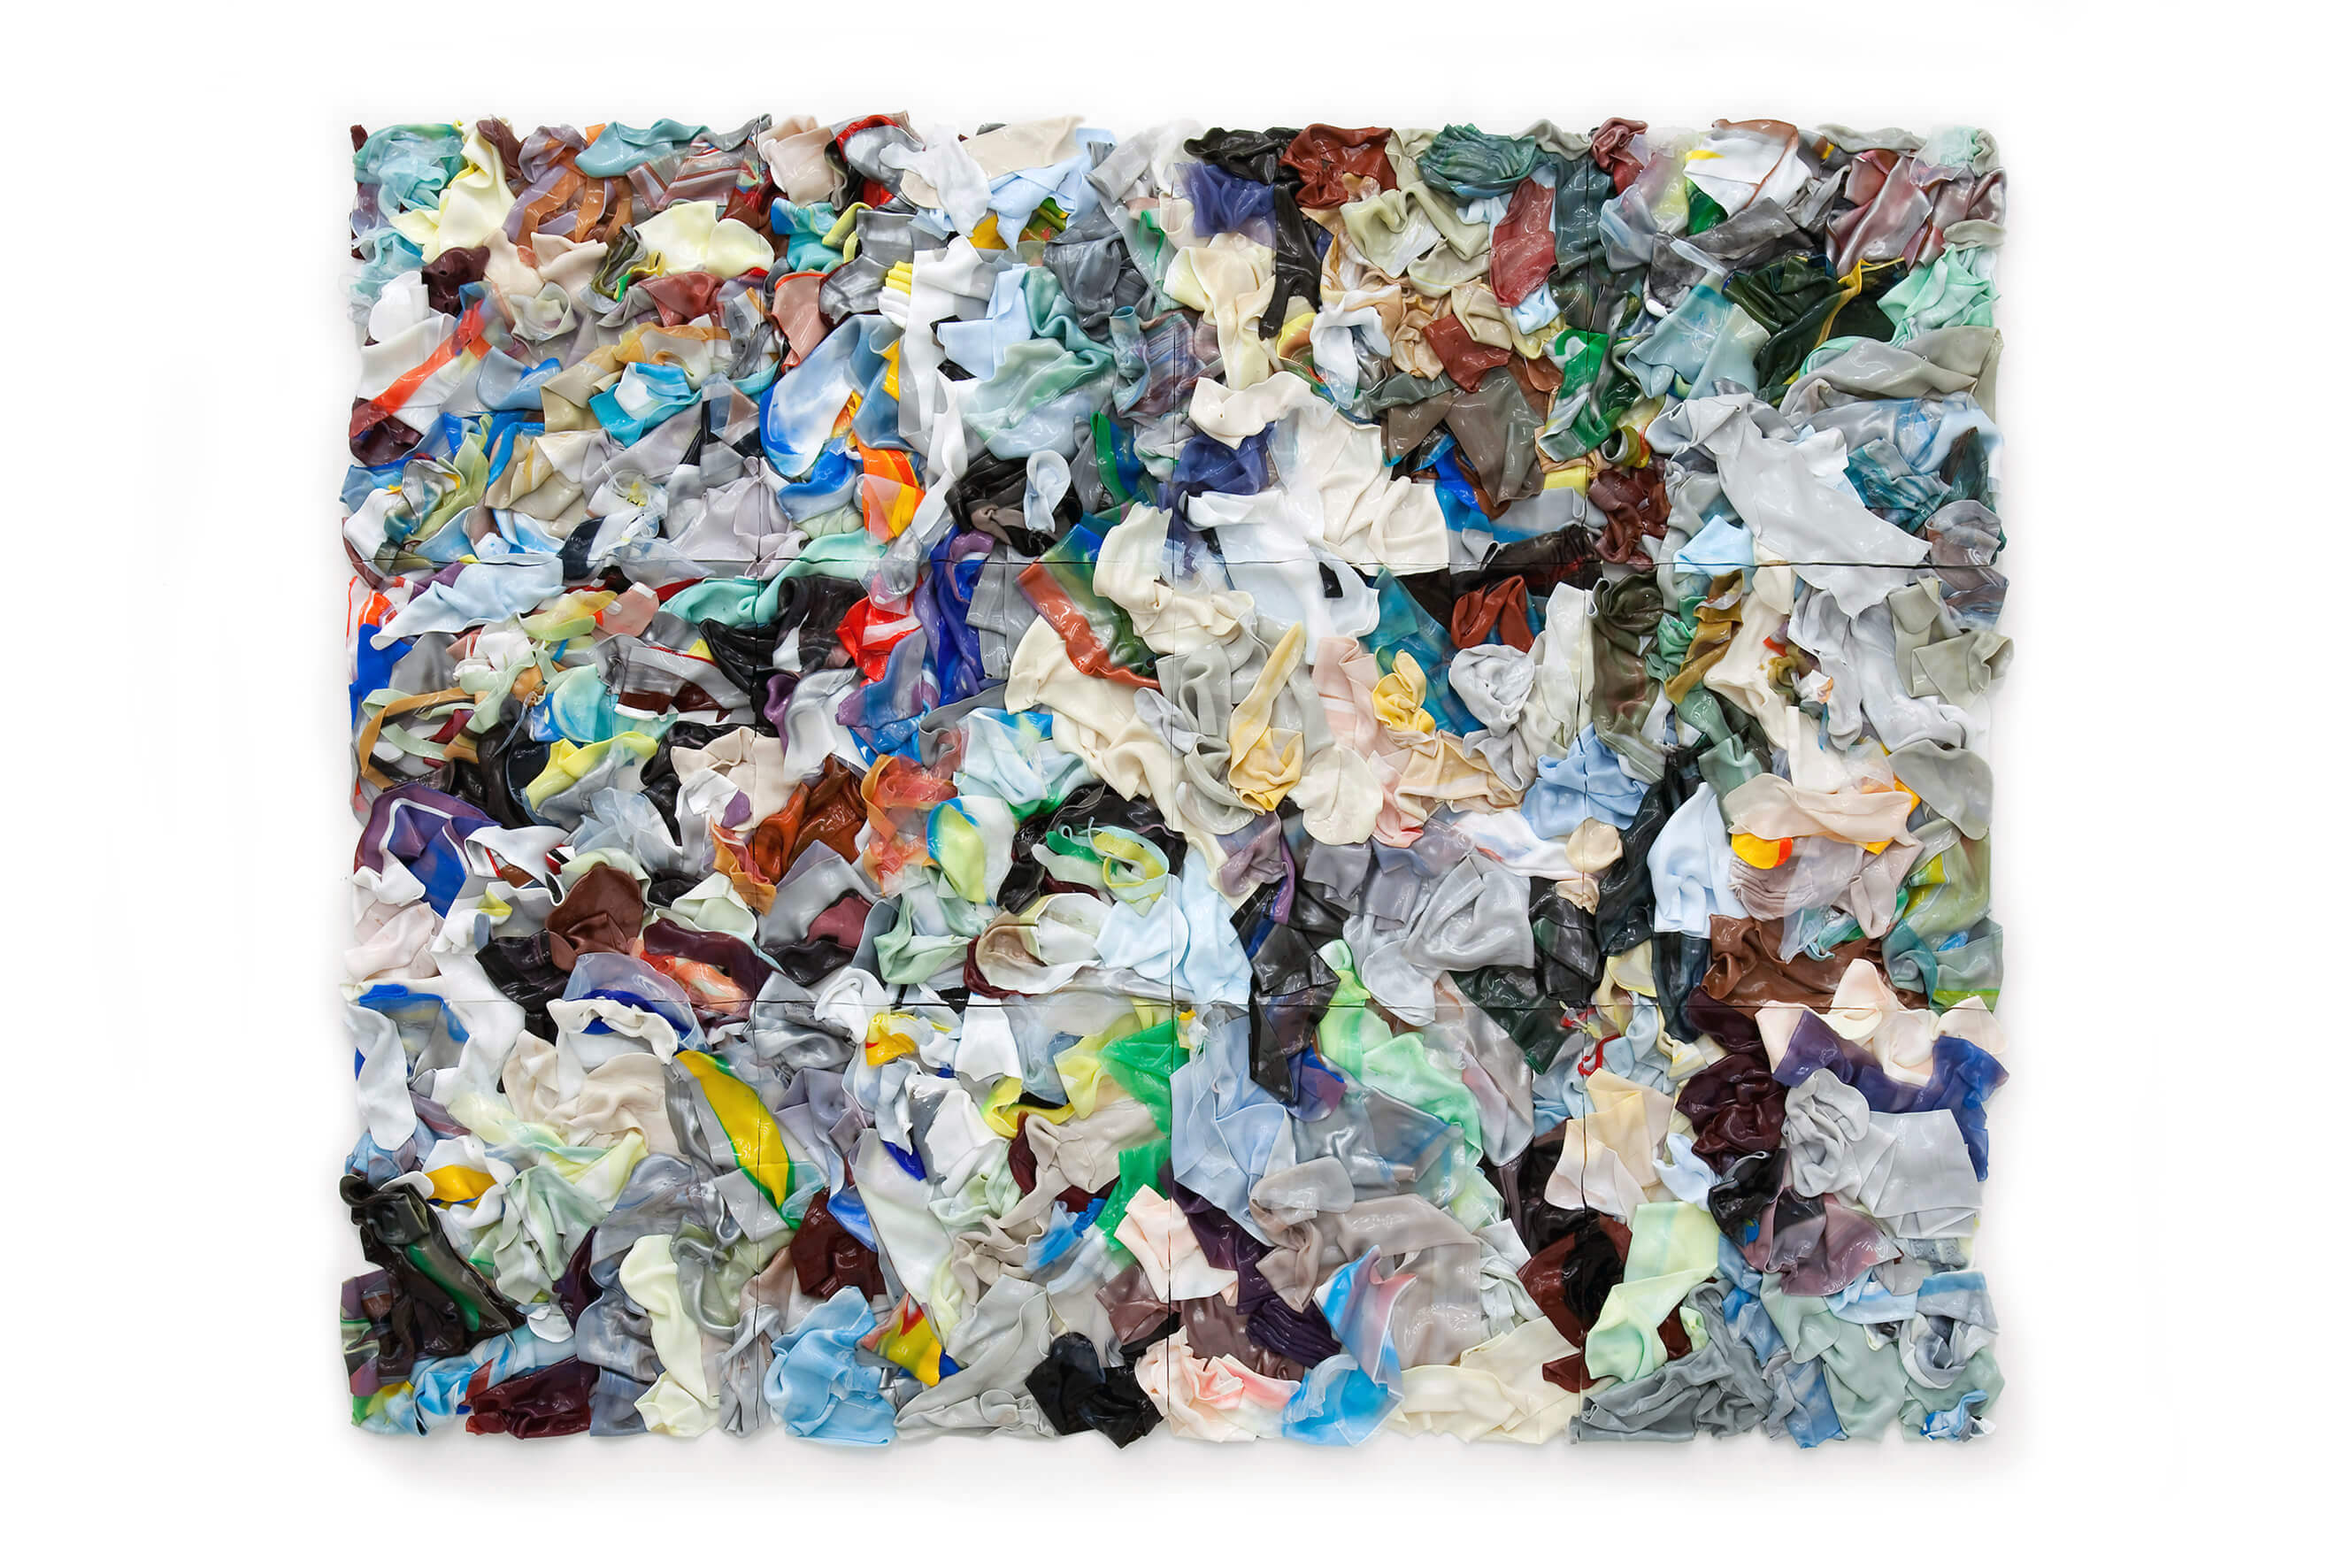 #1002 (Flake Duodecaplet) (Piled Painting), 2010/12